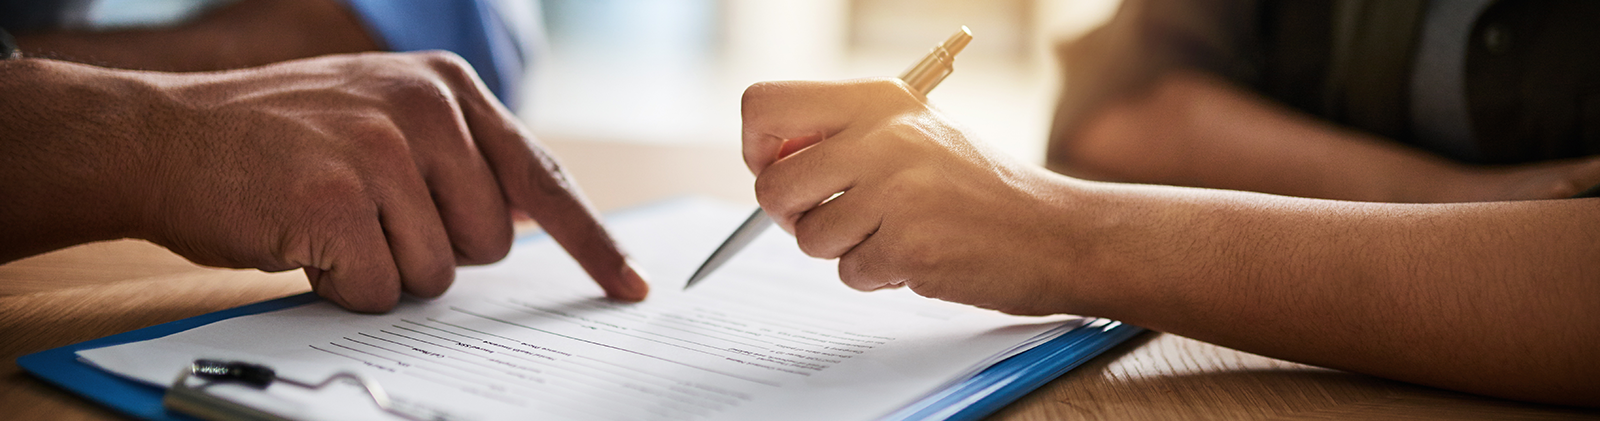 Common Health Insurance Application Mistakes (And How to Avoid Them)